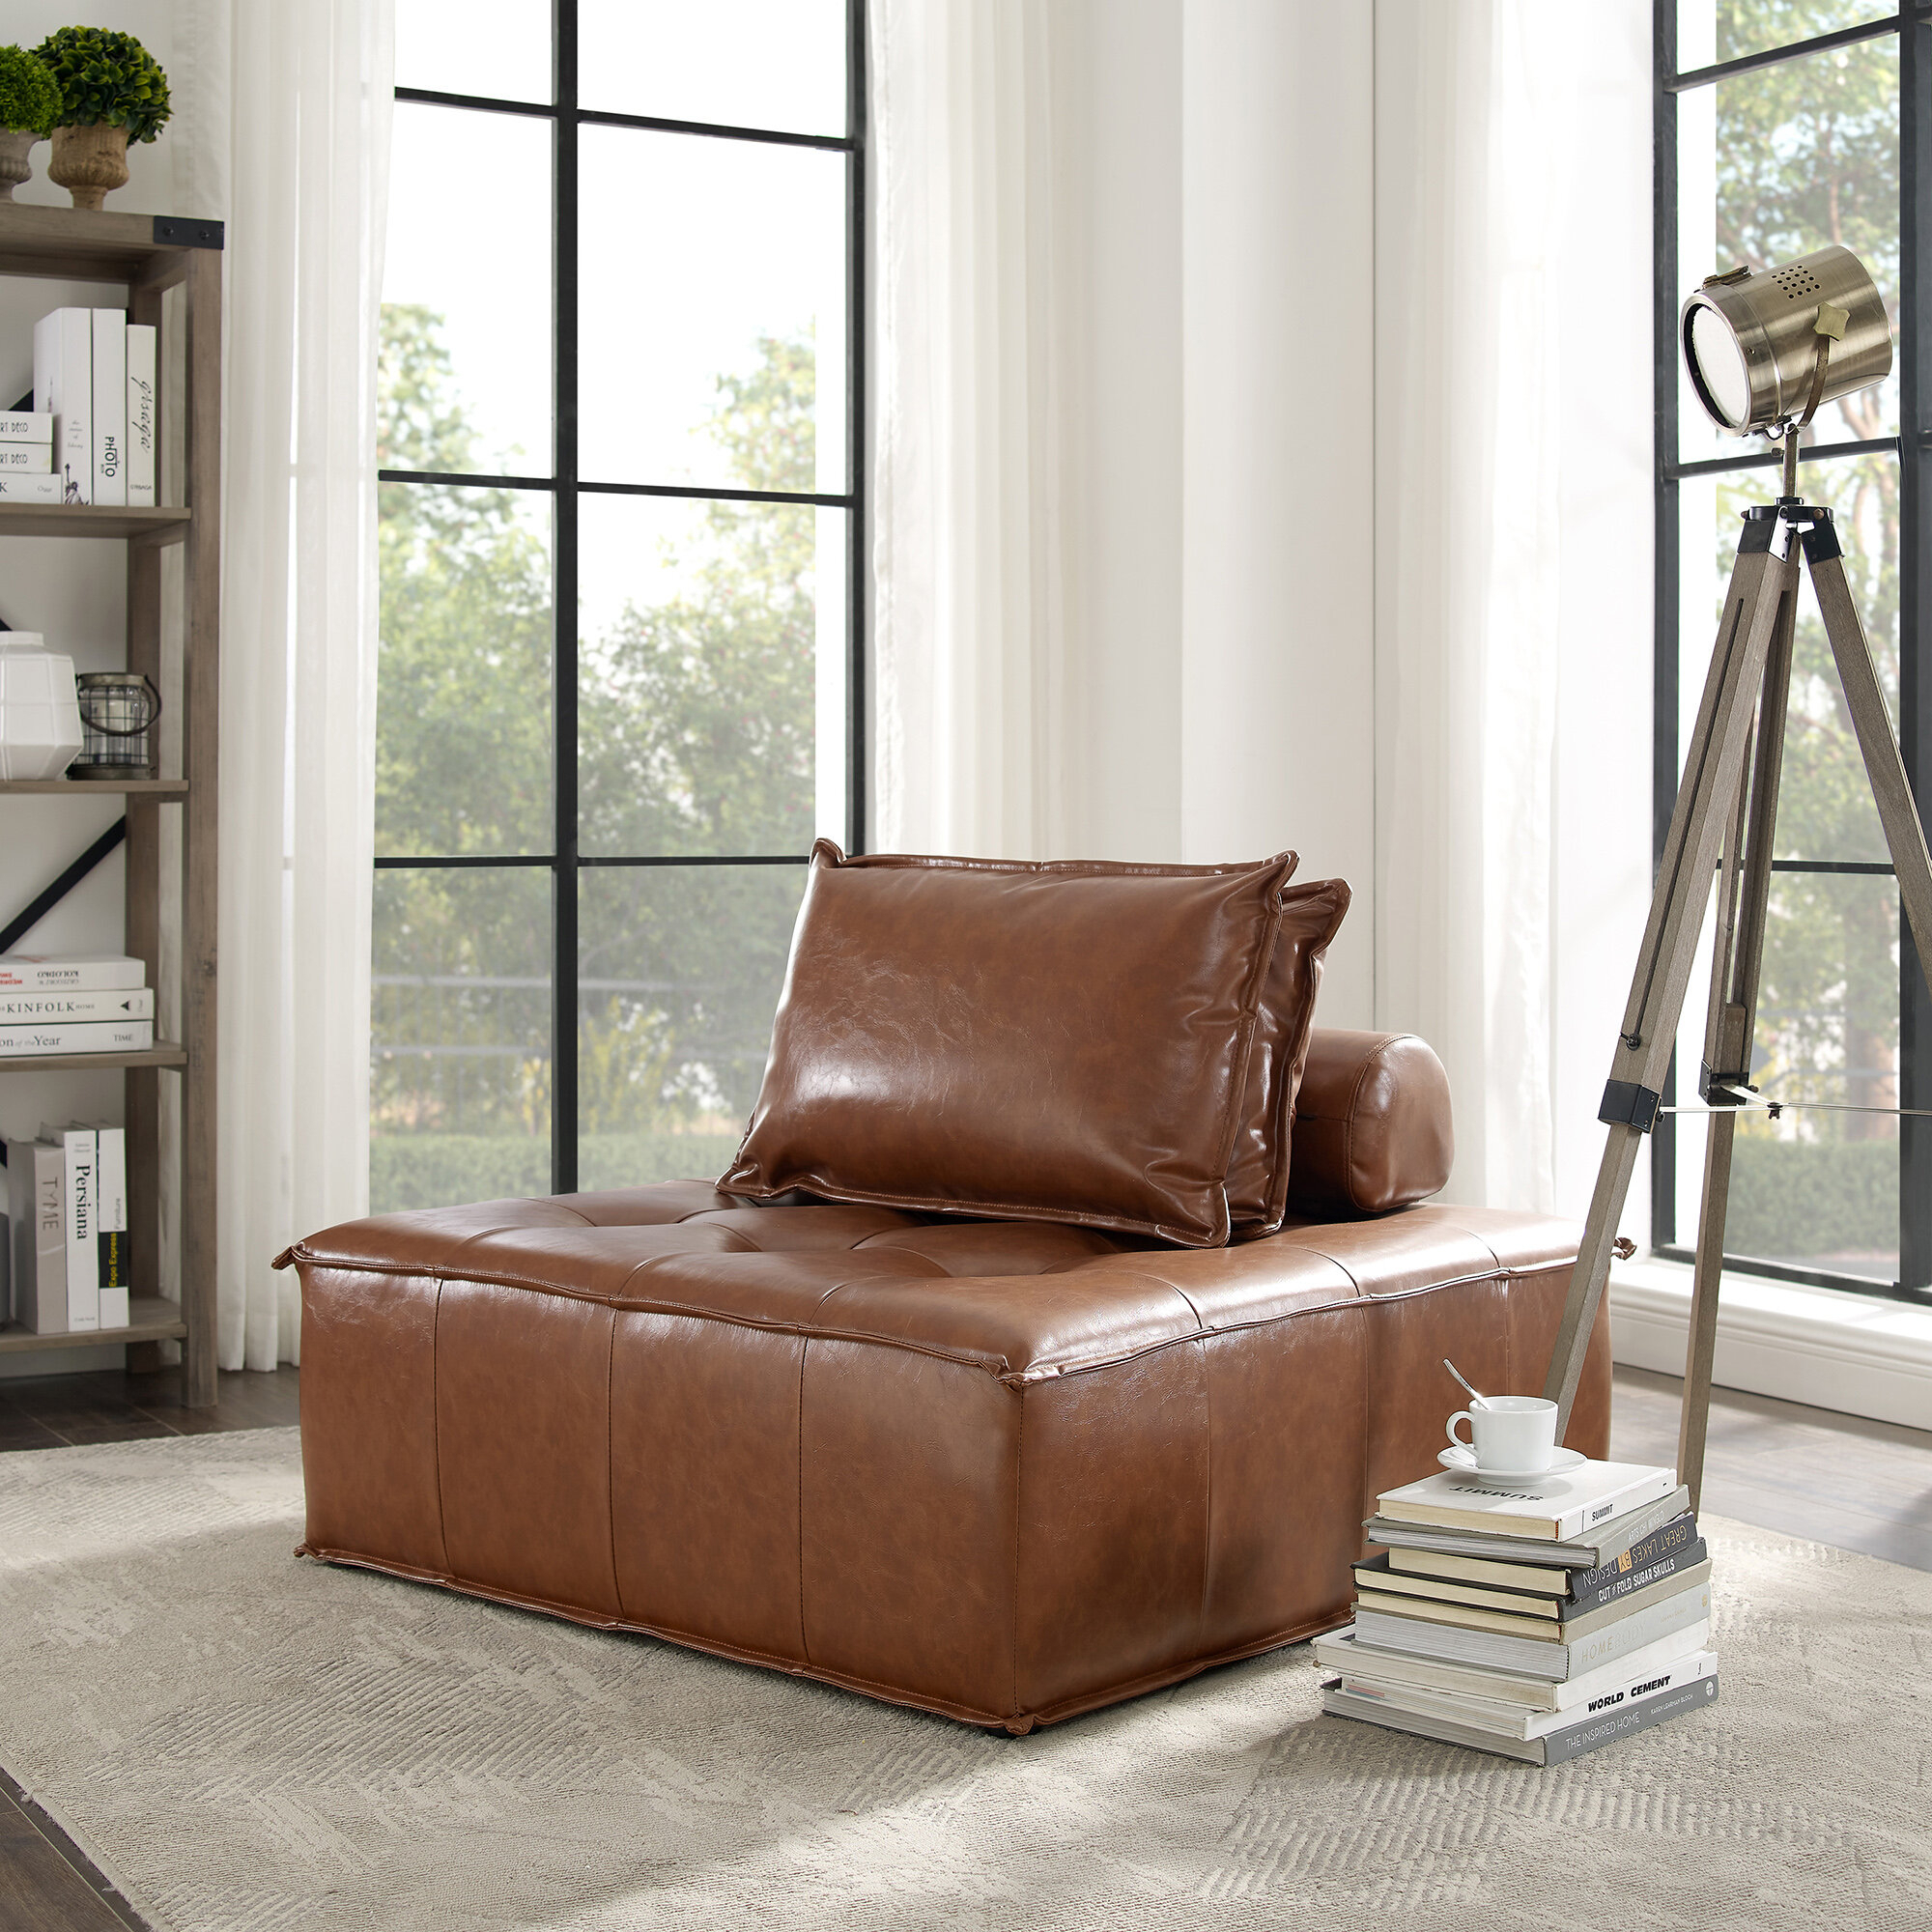 Convertible Solid Accent Chairs You'Ll Love In 2020 Regarding Perz Tufted Faux Leather Convertible Chairs (View 7 of 15)